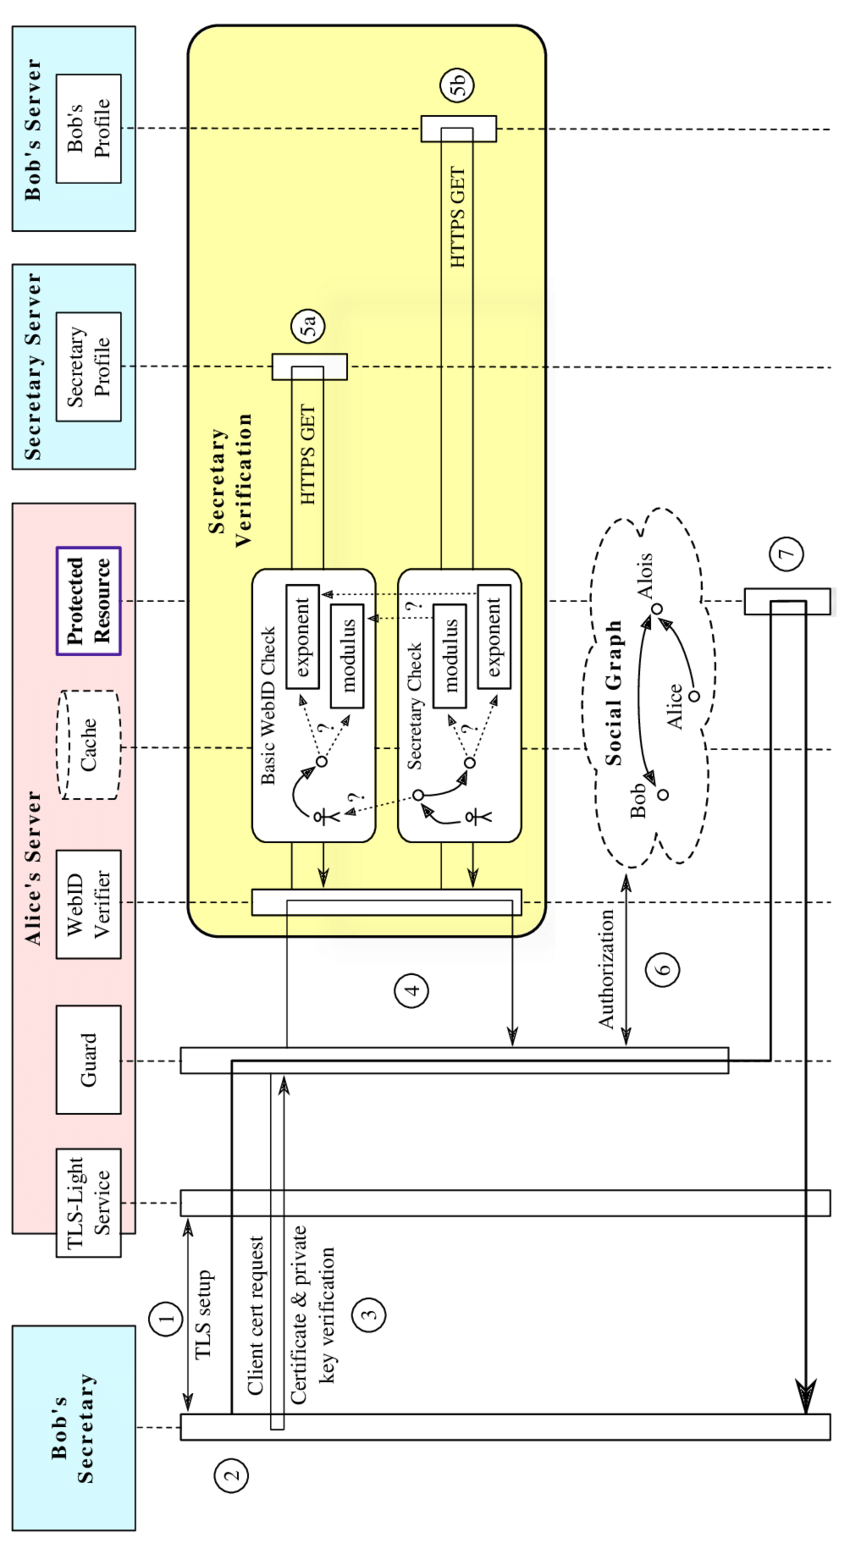 hight resolution of extended webid authentication sequence